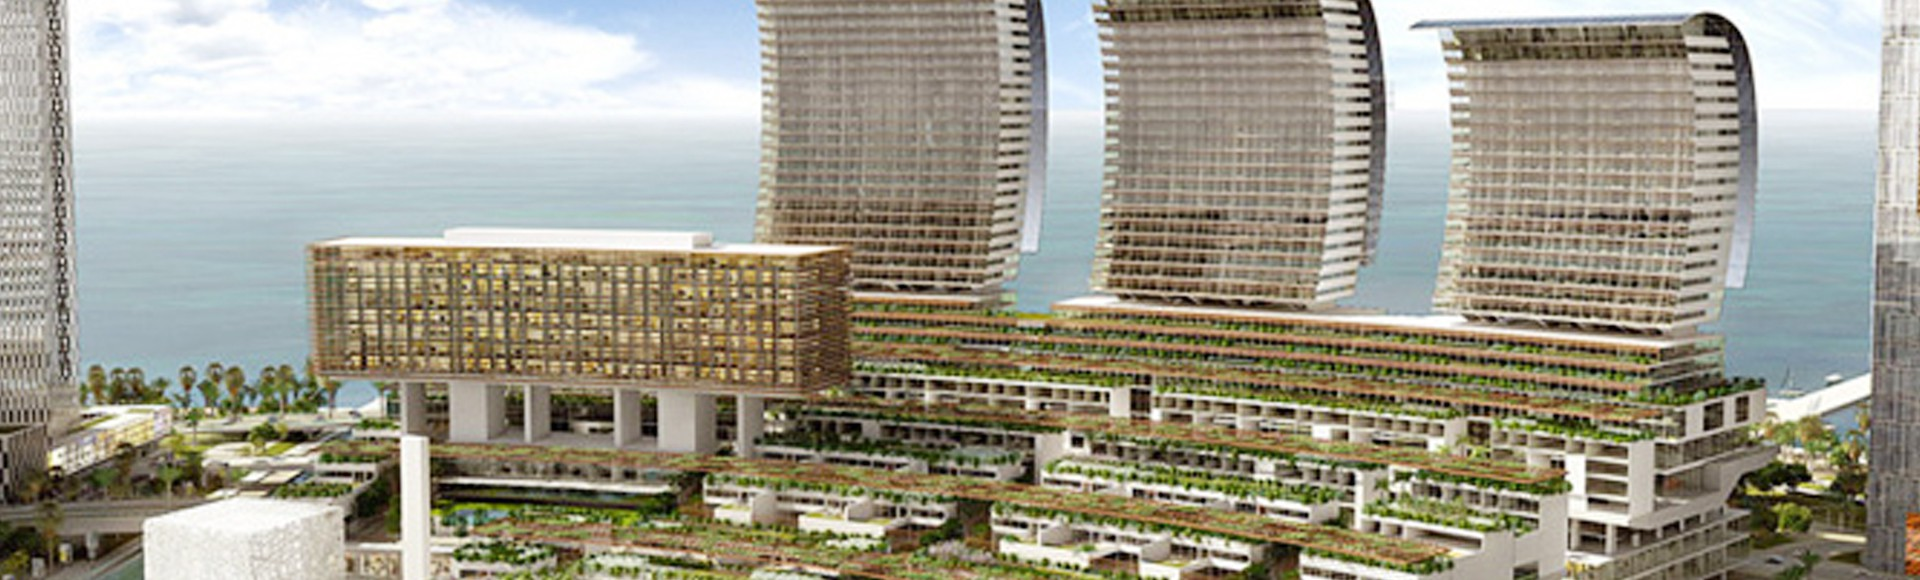 Raffles-City-Bahrein-2-1920×580-c-center